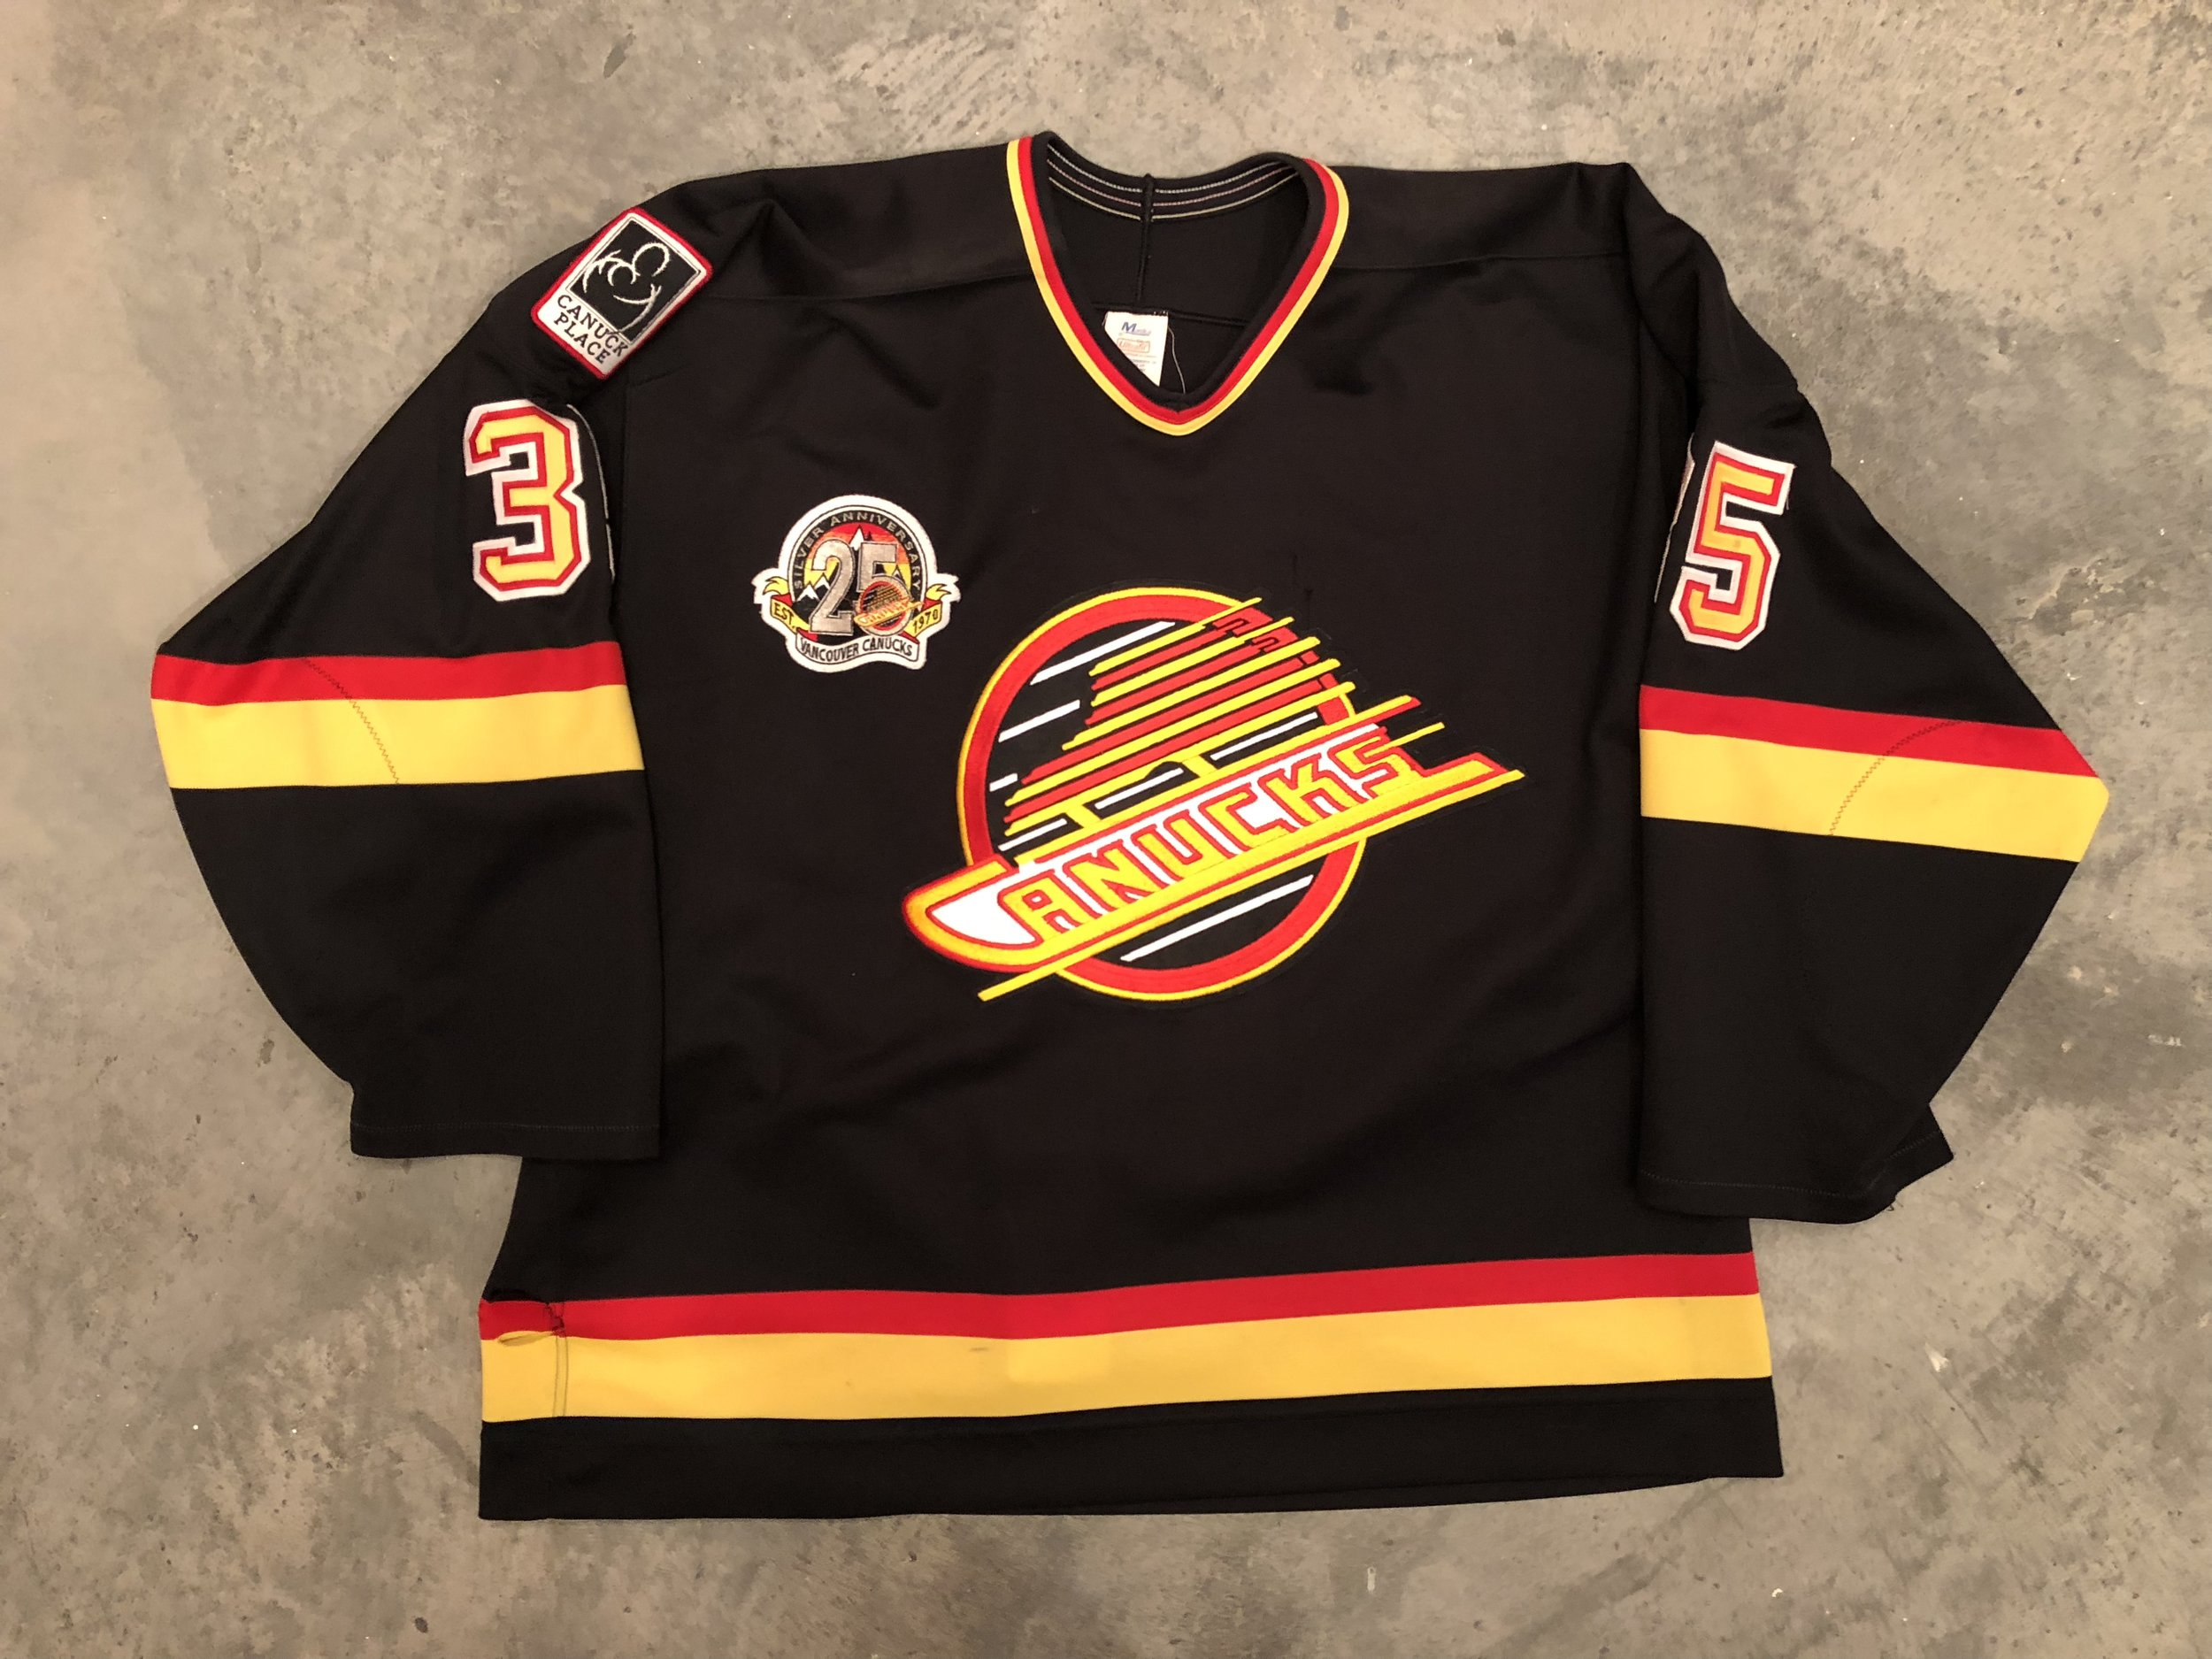 1995 Kay Whitmore game worn road jersey with Canucks 25th anniversary patch